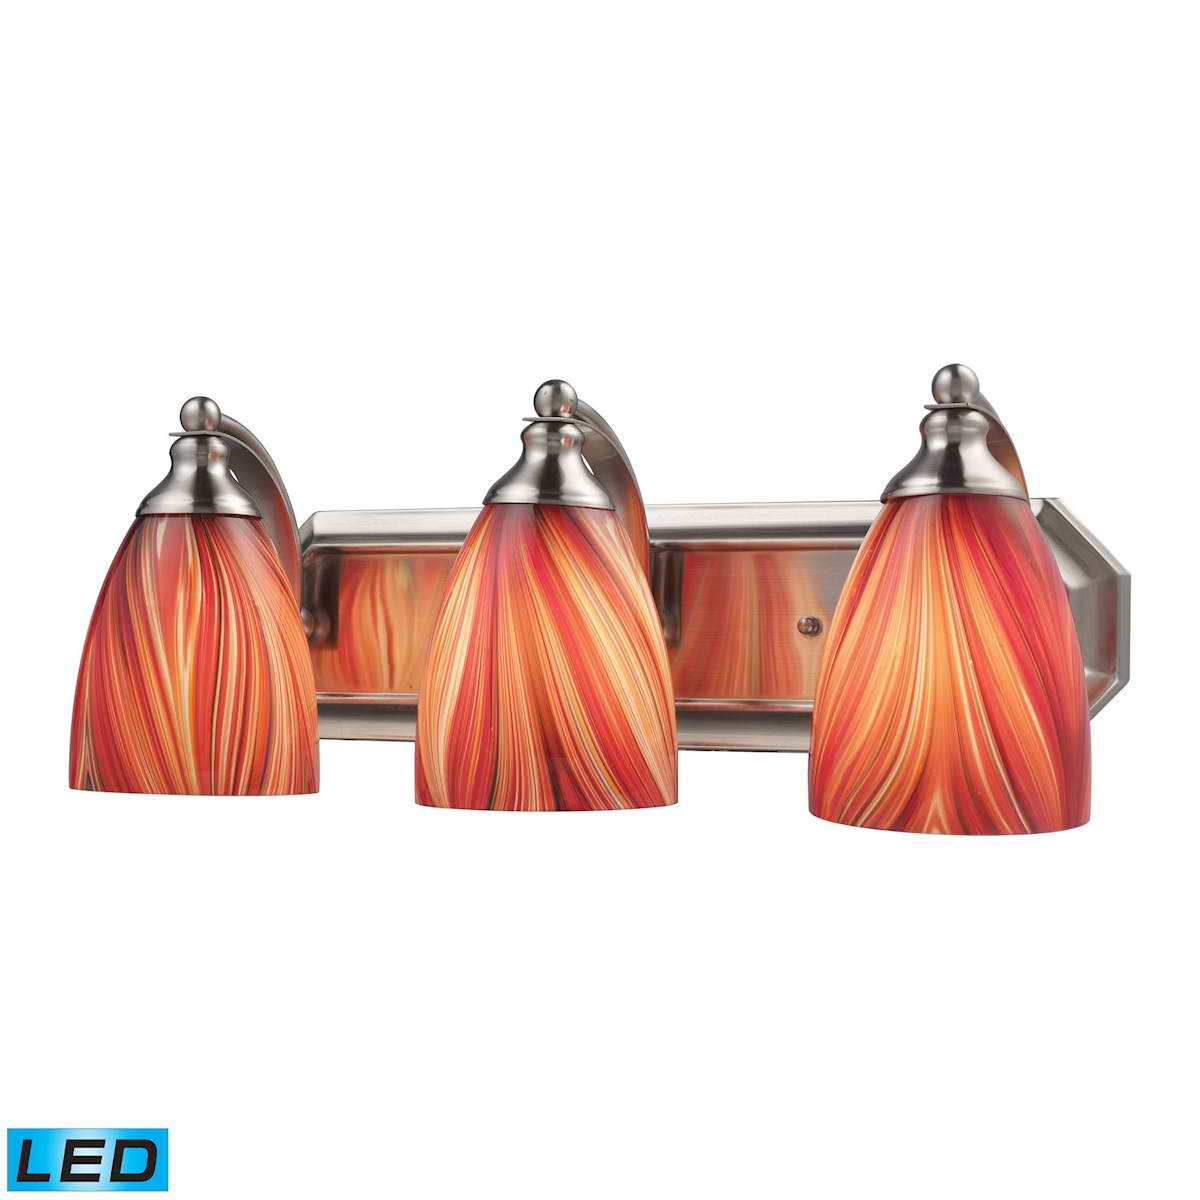 3 Light Vanity in Satin Nickel and Multi Glass - LED, 800 Lumens (2400 Lumens Total) with Full Scale